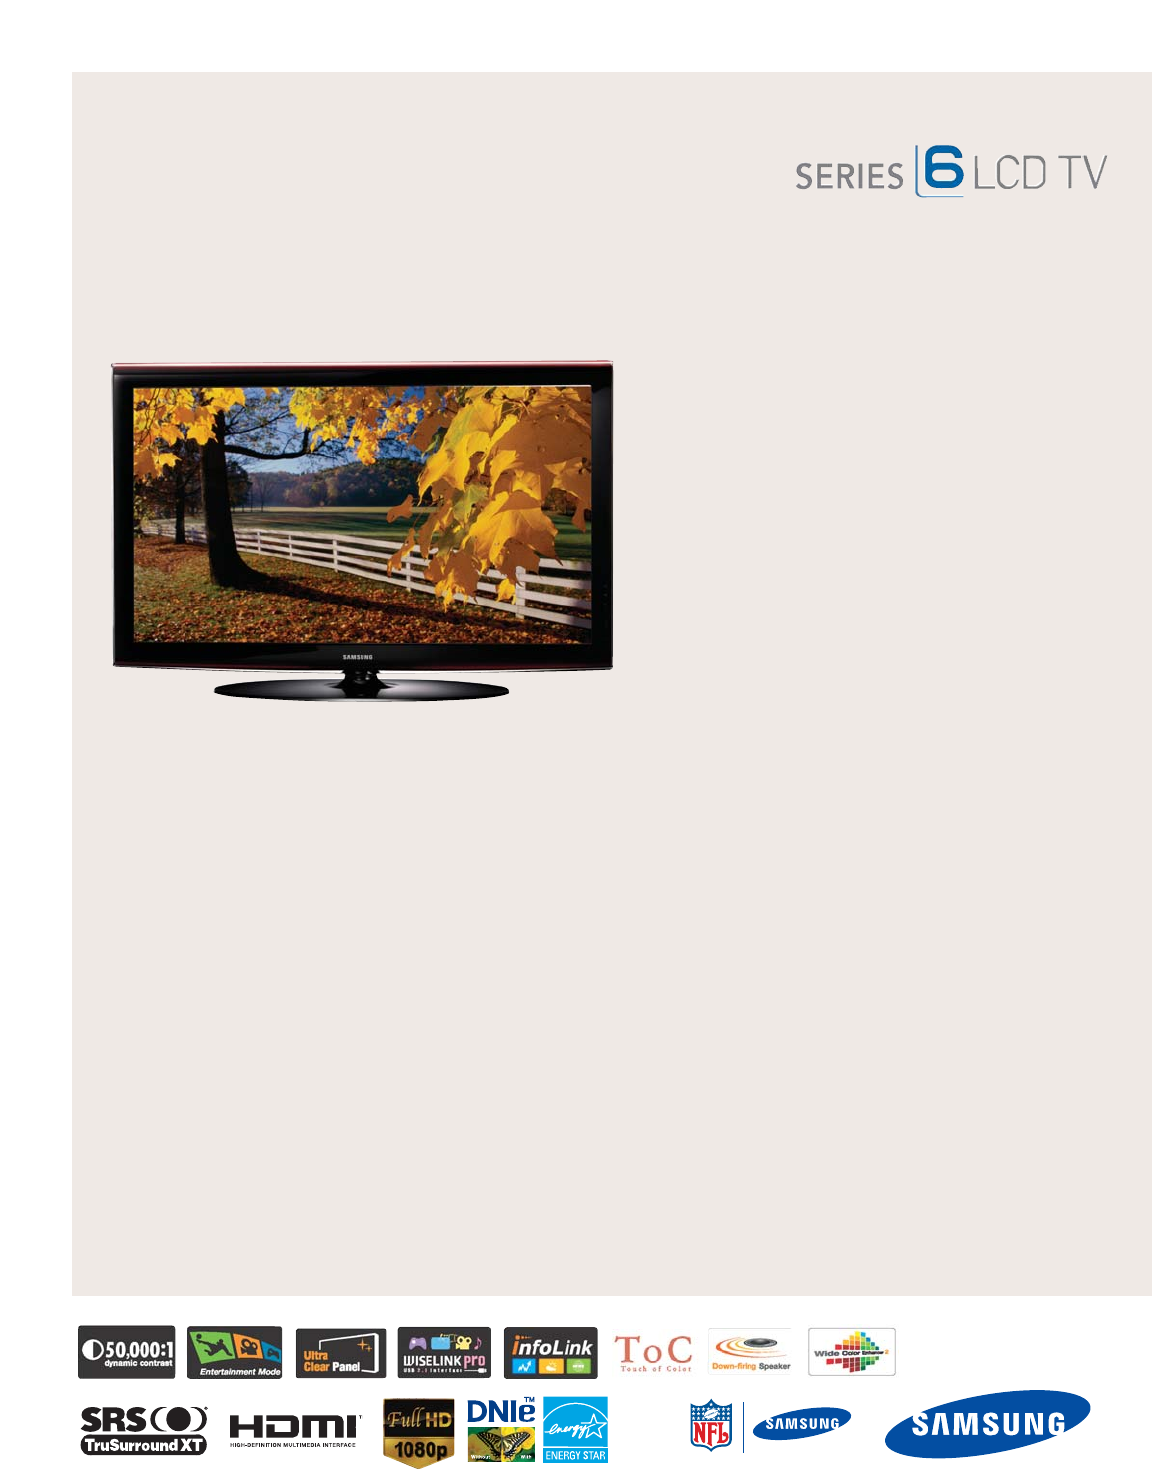 samsung flat panel television ln40a650 user guide manualsonline com rh tv manualsonline com Samsung TV Instruction Manual Samsung TV Instruction Manual